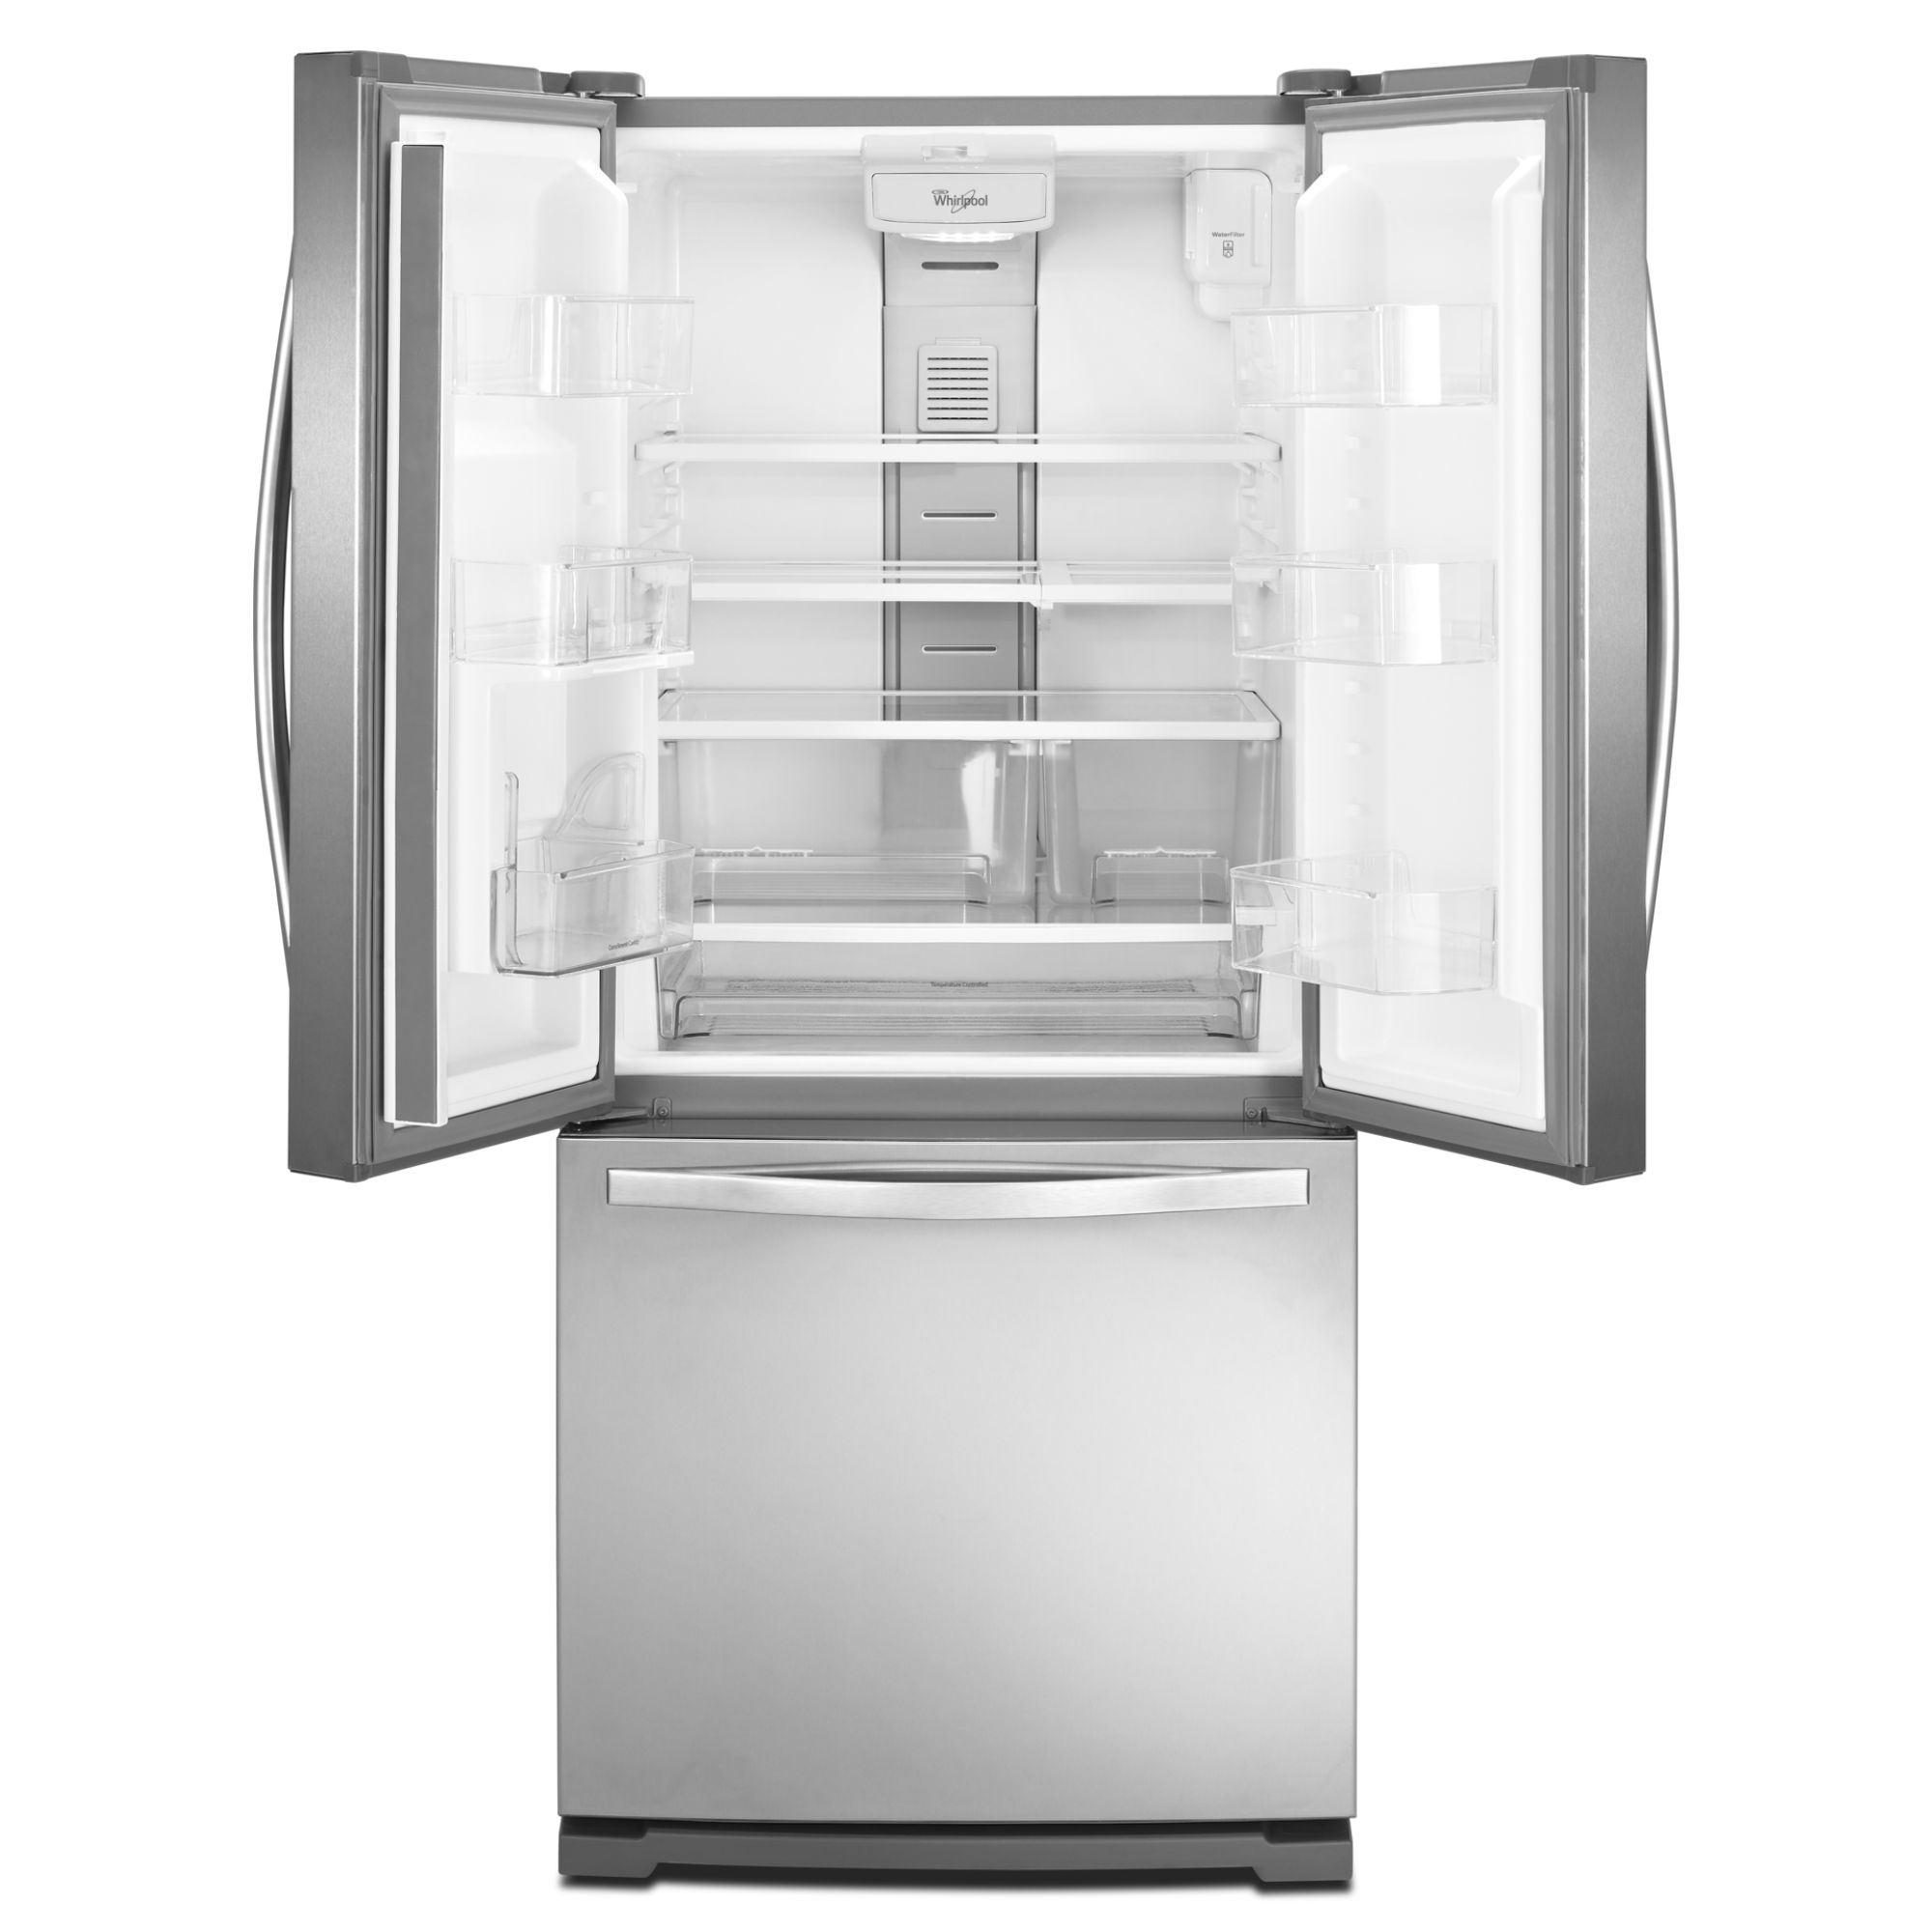 Whirlpool 20 cu. ft. French Door Refrigerator w/ Exterior Dispenser - Stainless Steel